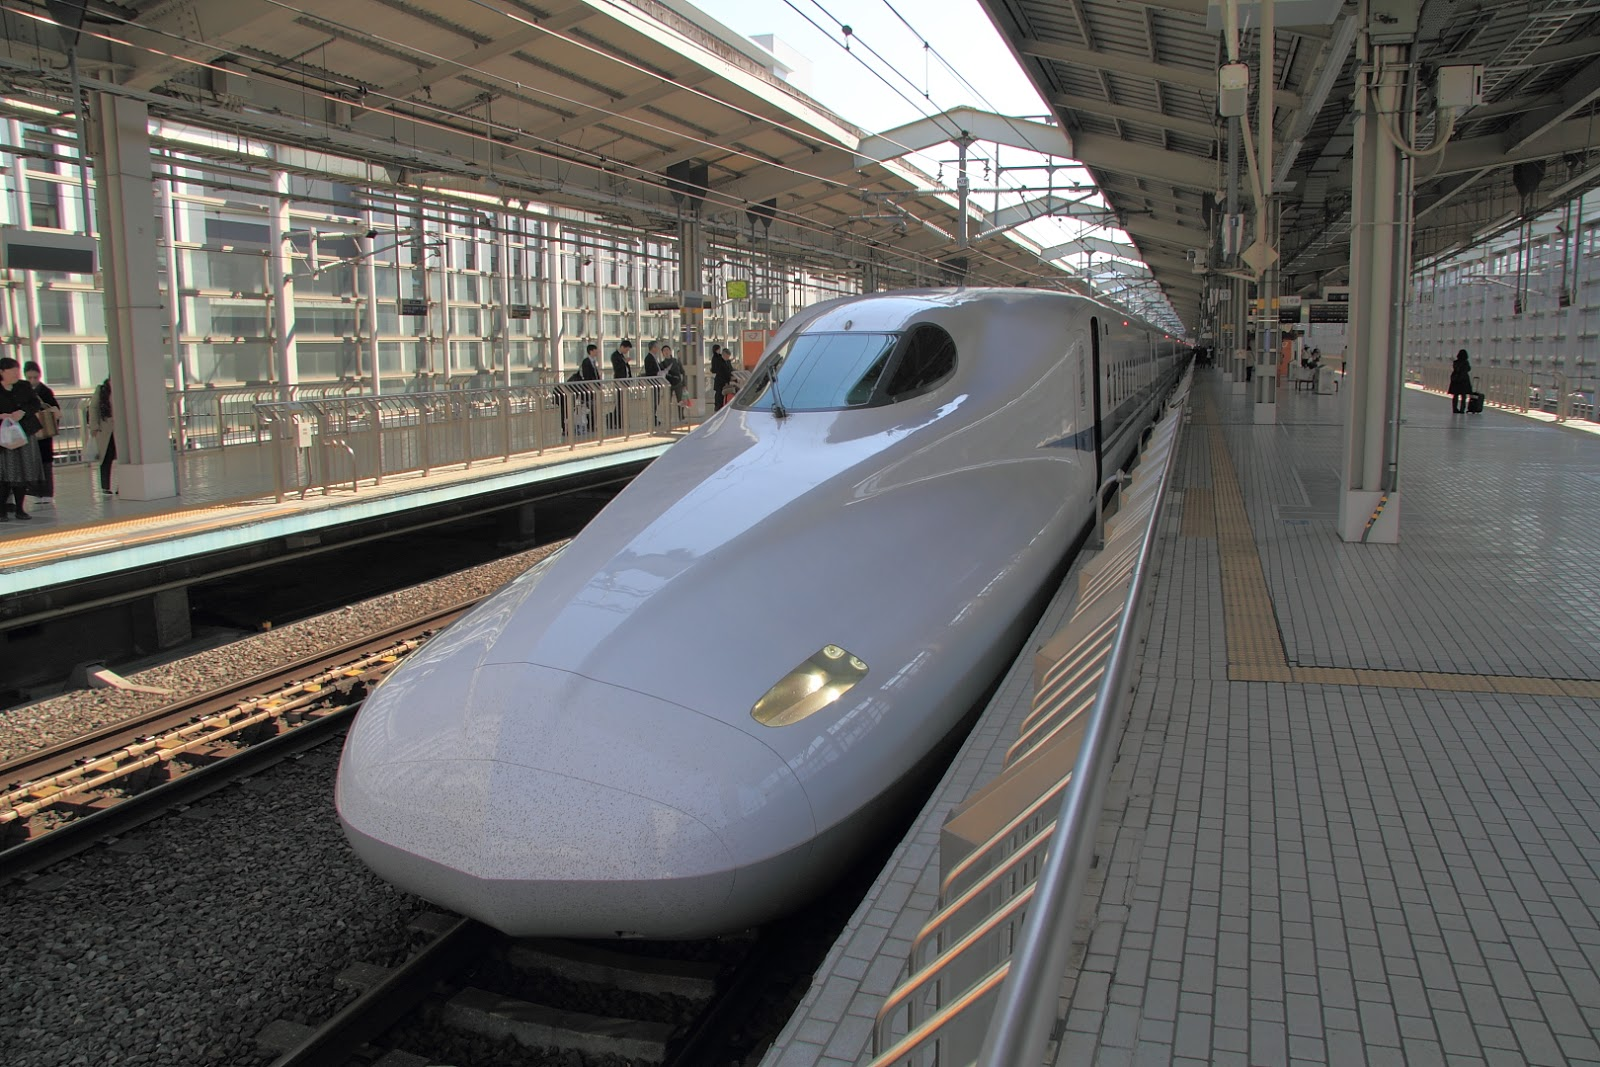 Bullet Trains Wallpaper 1600x1067